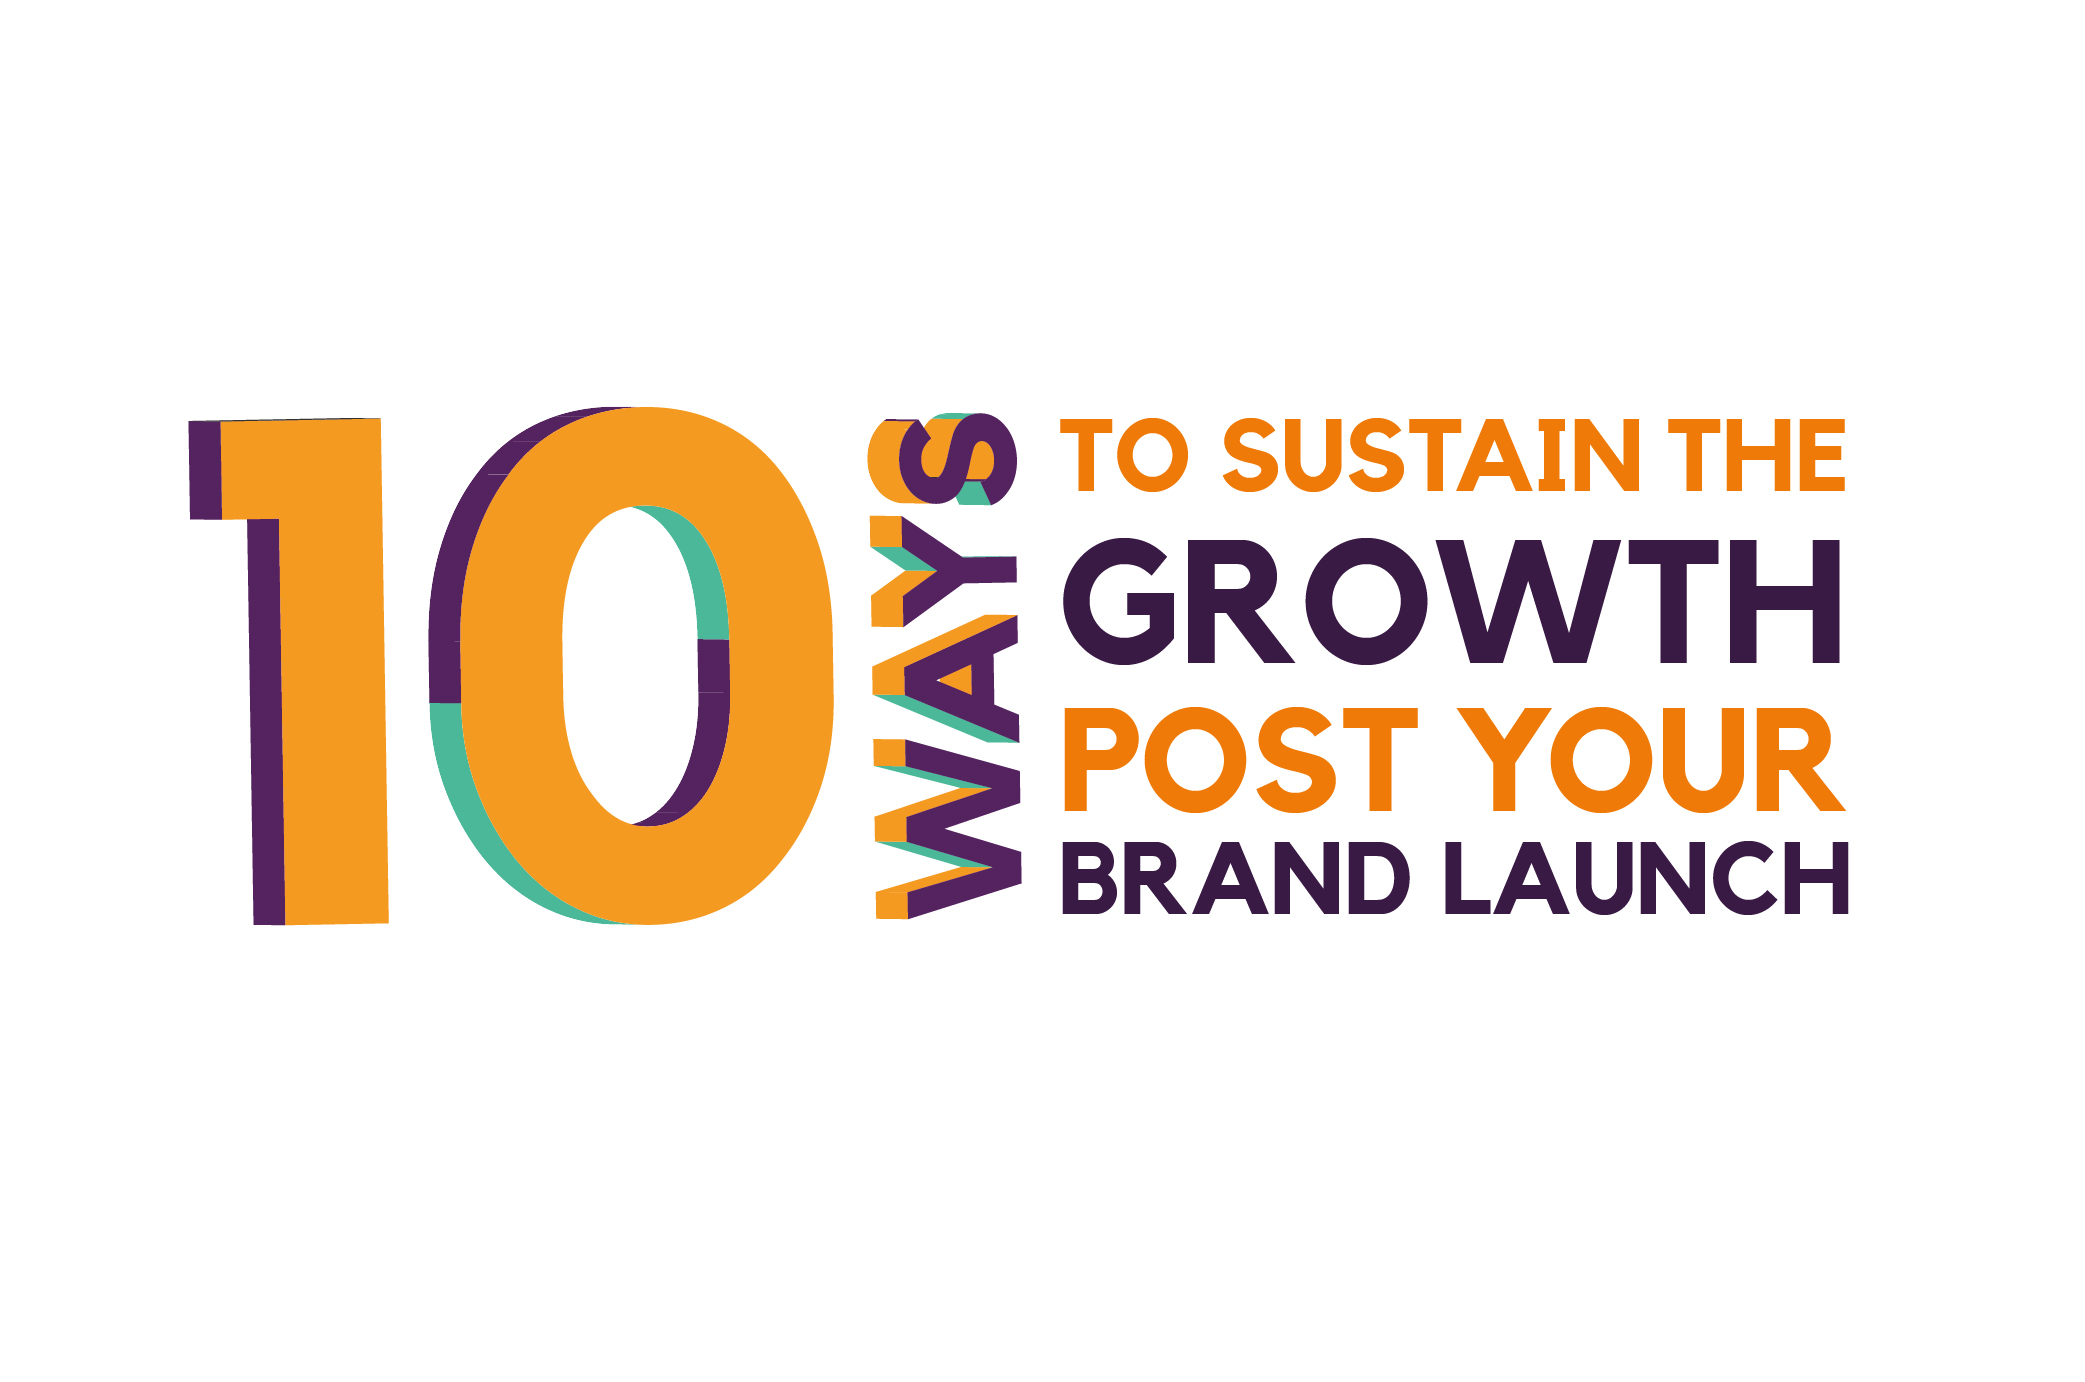 10 WAYS TO SUSTAIN THE GROWTH POST YOUR BRAND LAUNCH